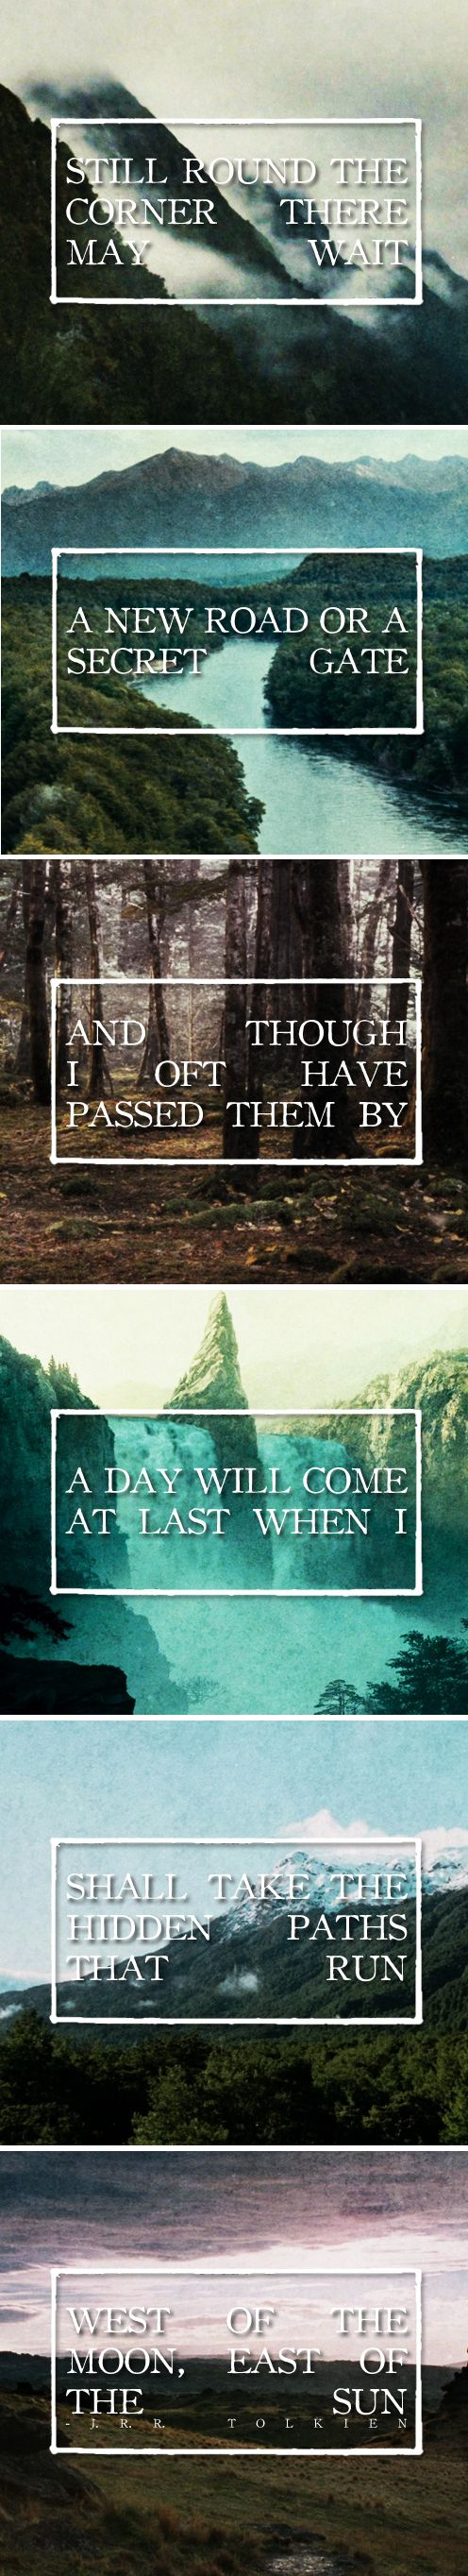 17 best ideas about jrr tolkien tolkien hobbit and still round the corner there wait a new road or a secret gate and though · j r r tolkien